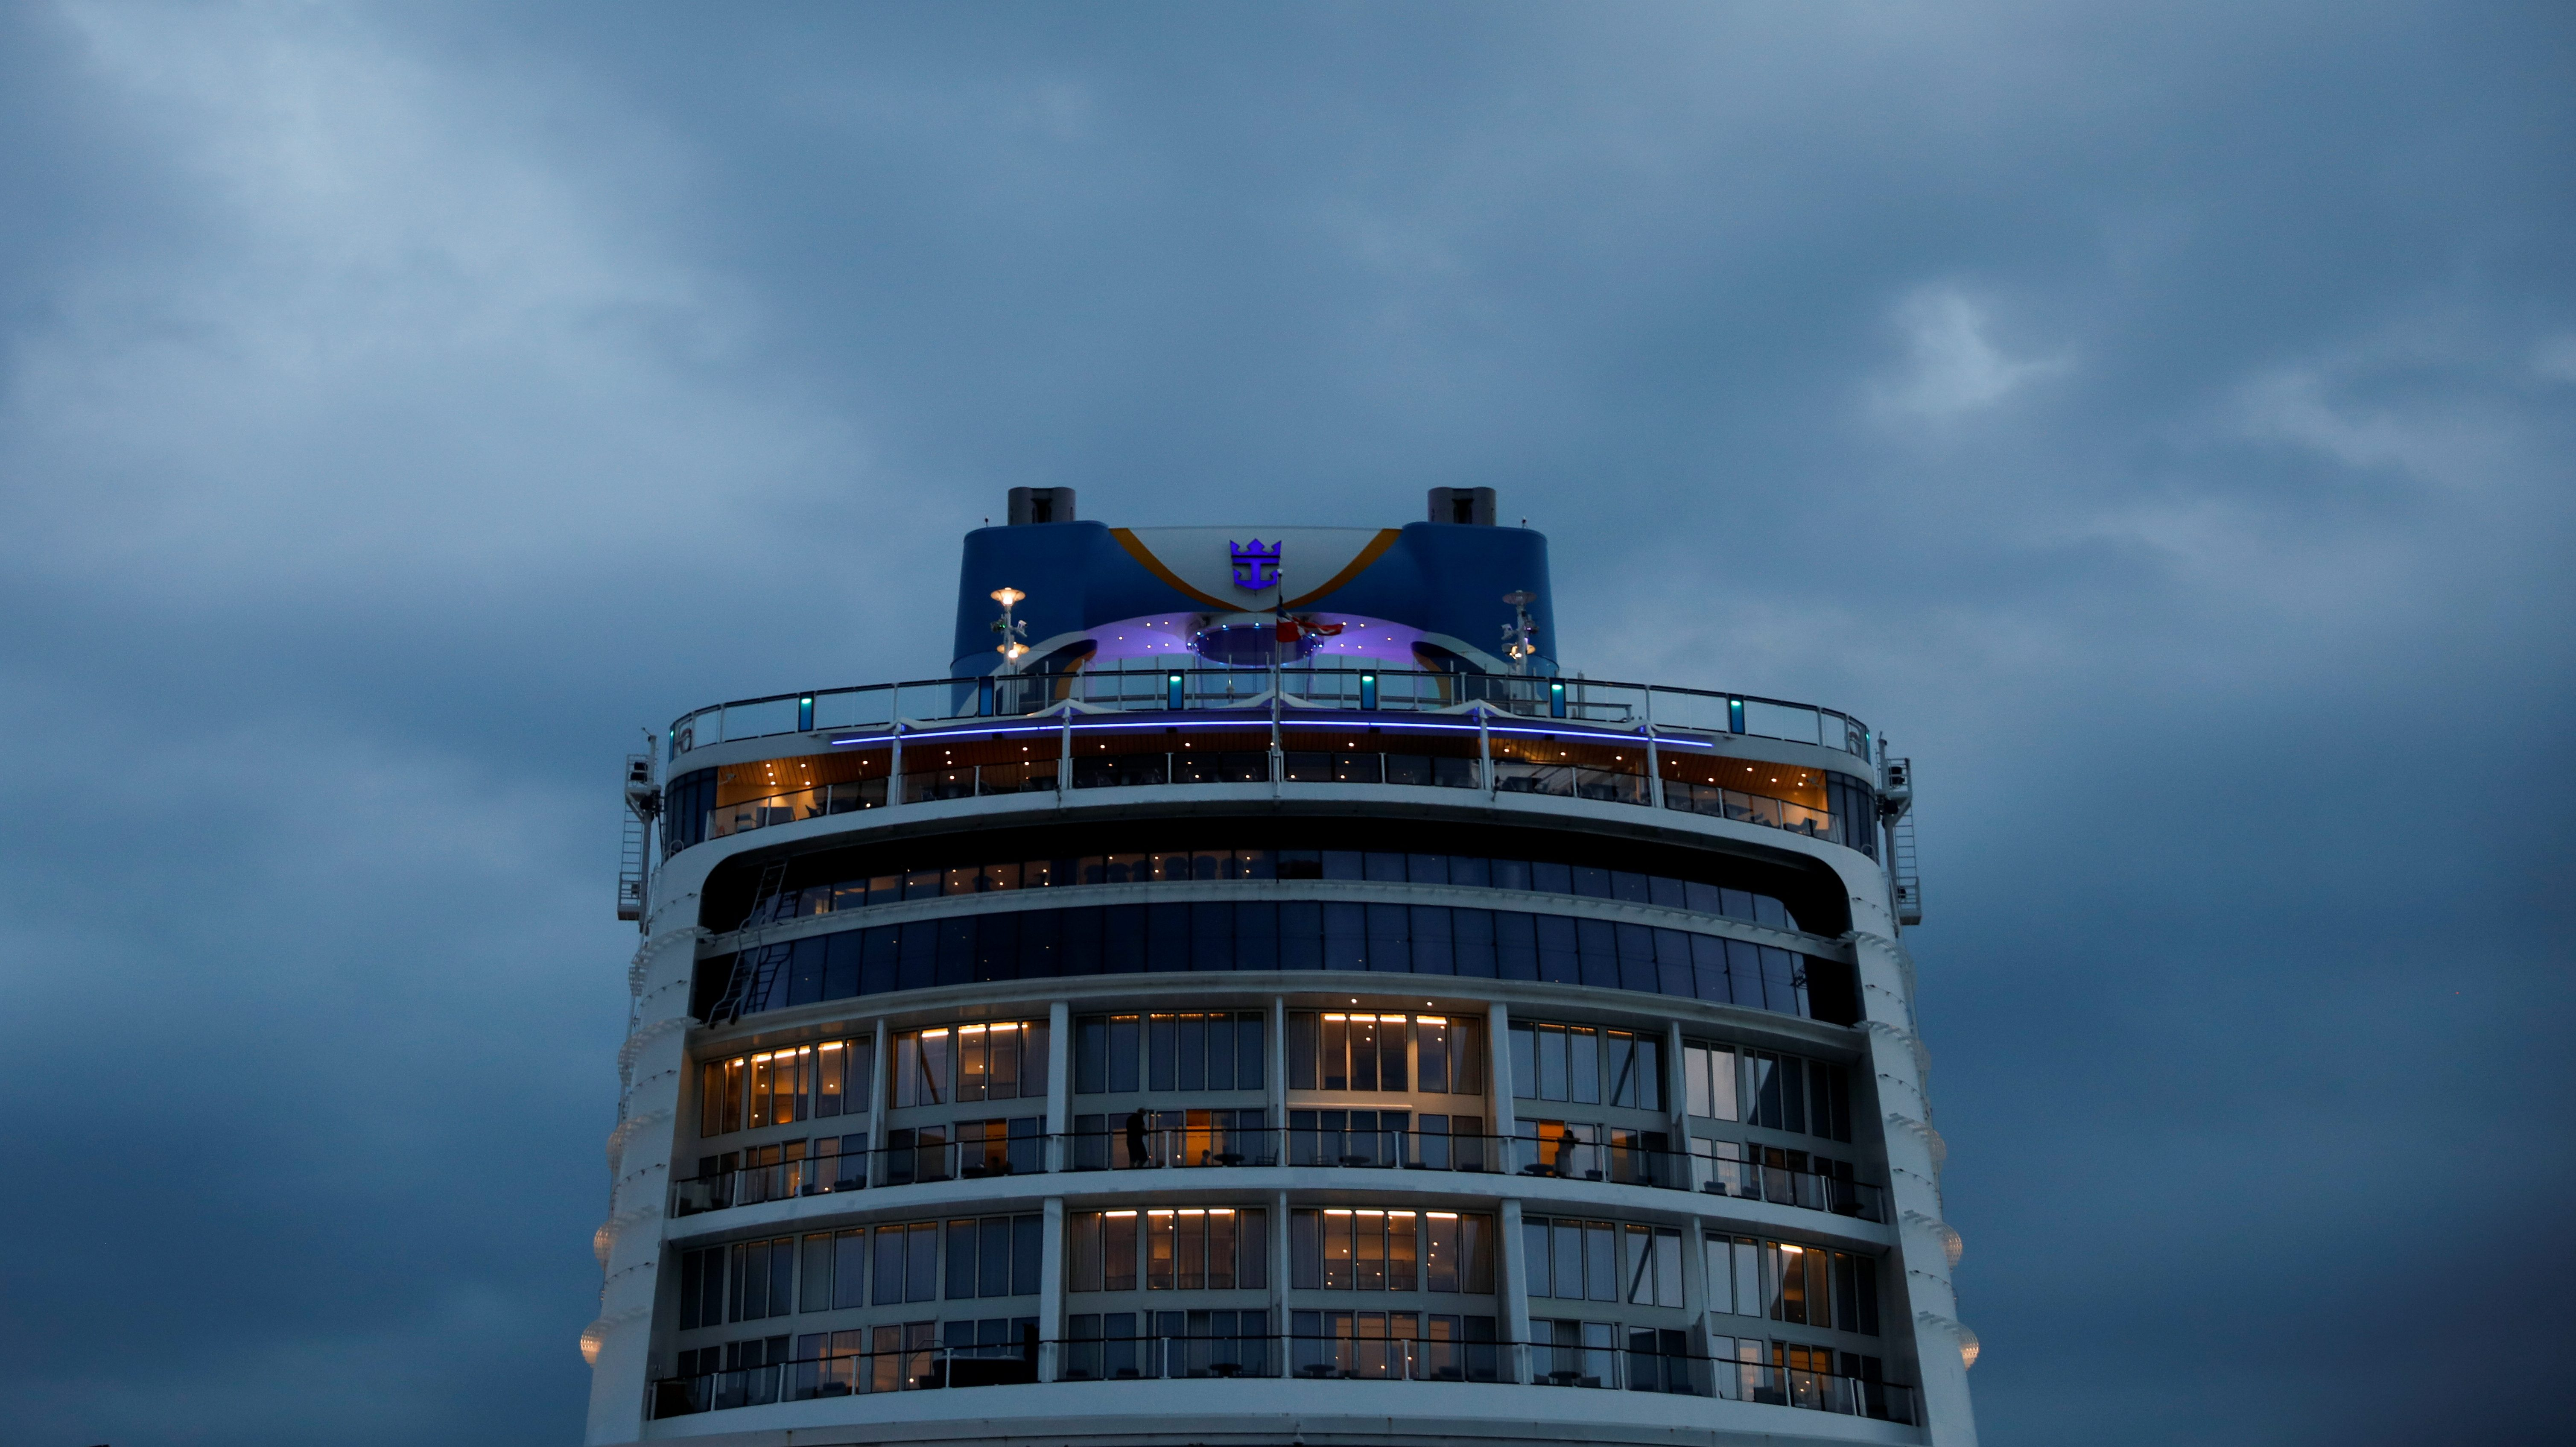 """The rear cabins of a Royal Caribbean ship, the Quantum of the Seas, are shown in front of dark, cloudy skies during a """"cruise to nowhere"""" in Singapore."""